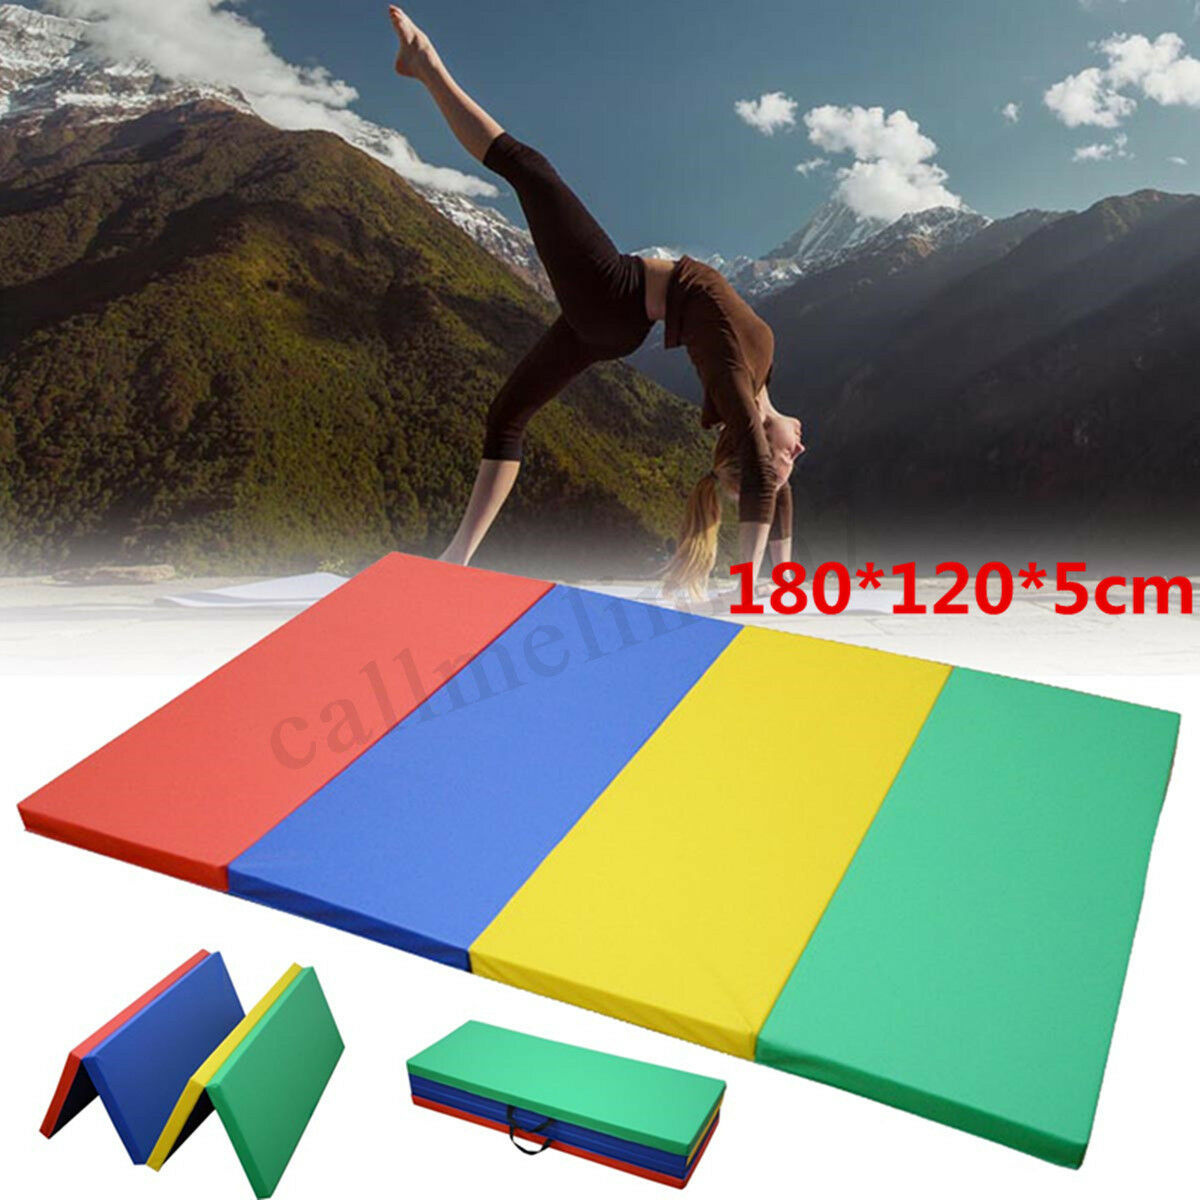 180x120x5cm Folding Gymnastics Mat Panel Exercise Pad Tumbling Fitness Home GYM